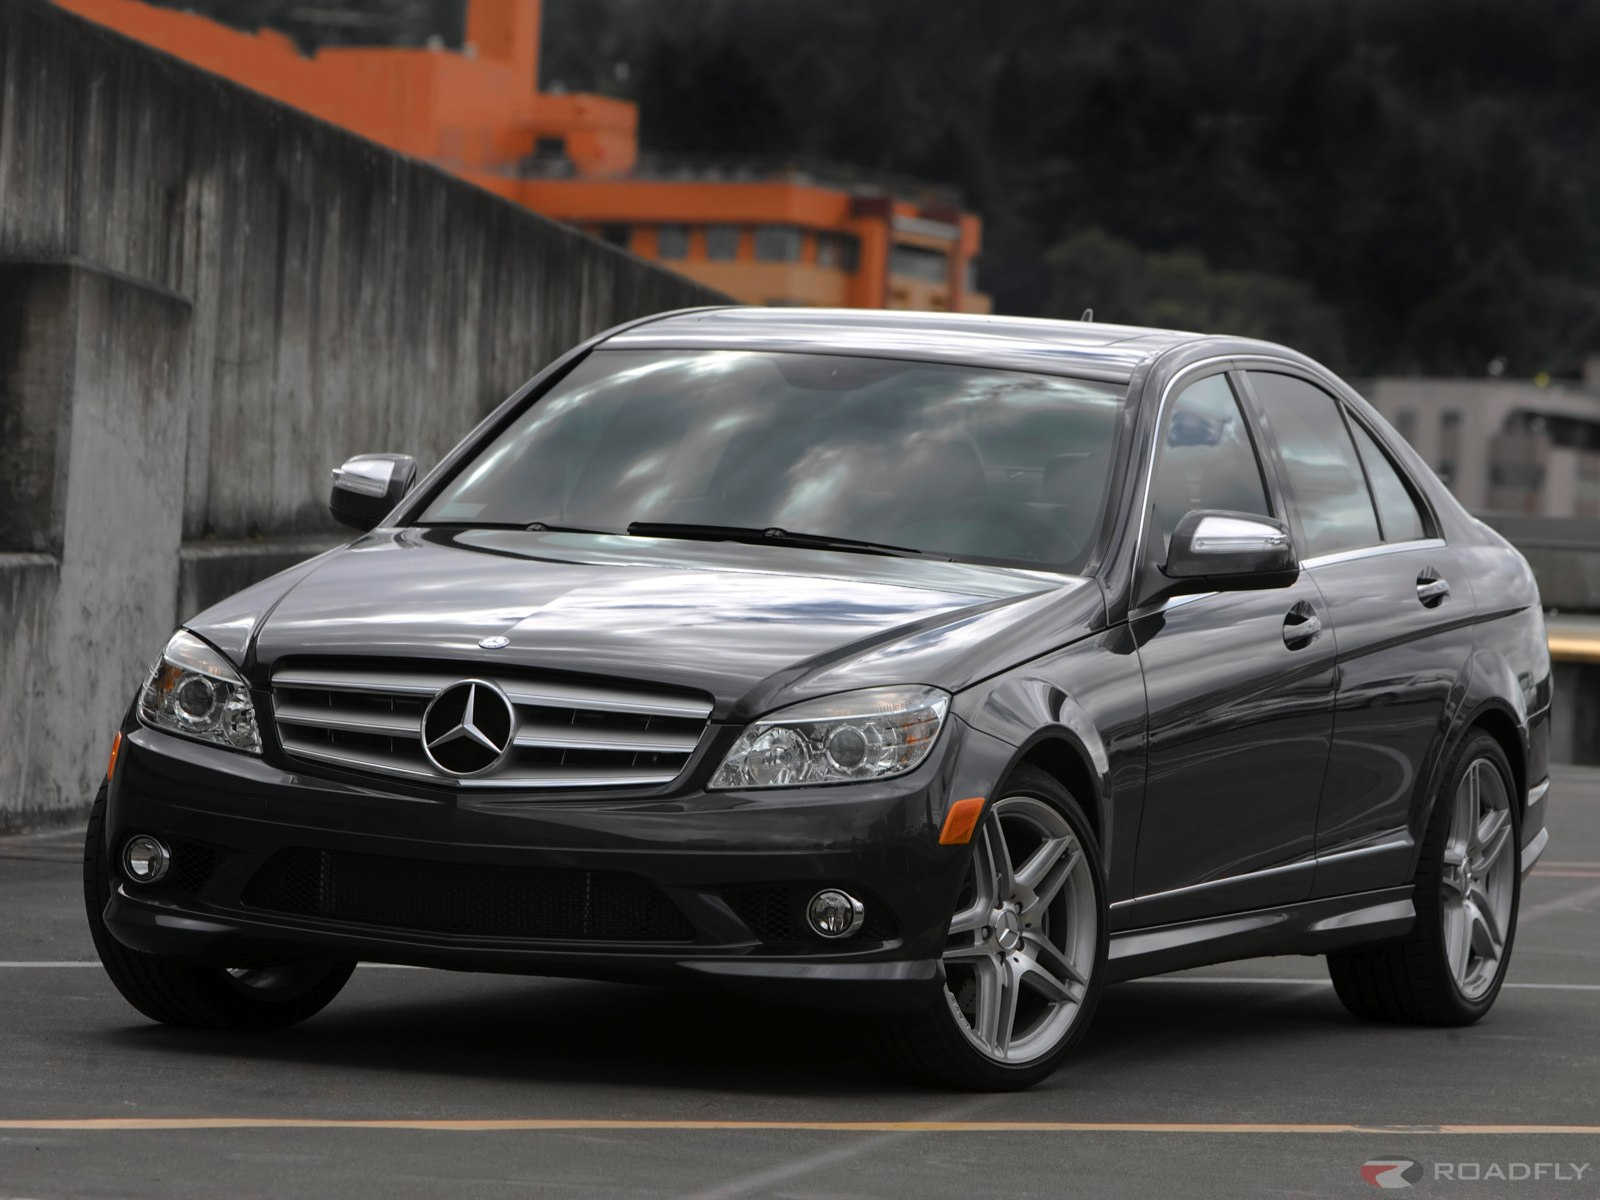 Mercedes benz pics mercedes benz auto cars for Mercedes benz car finder